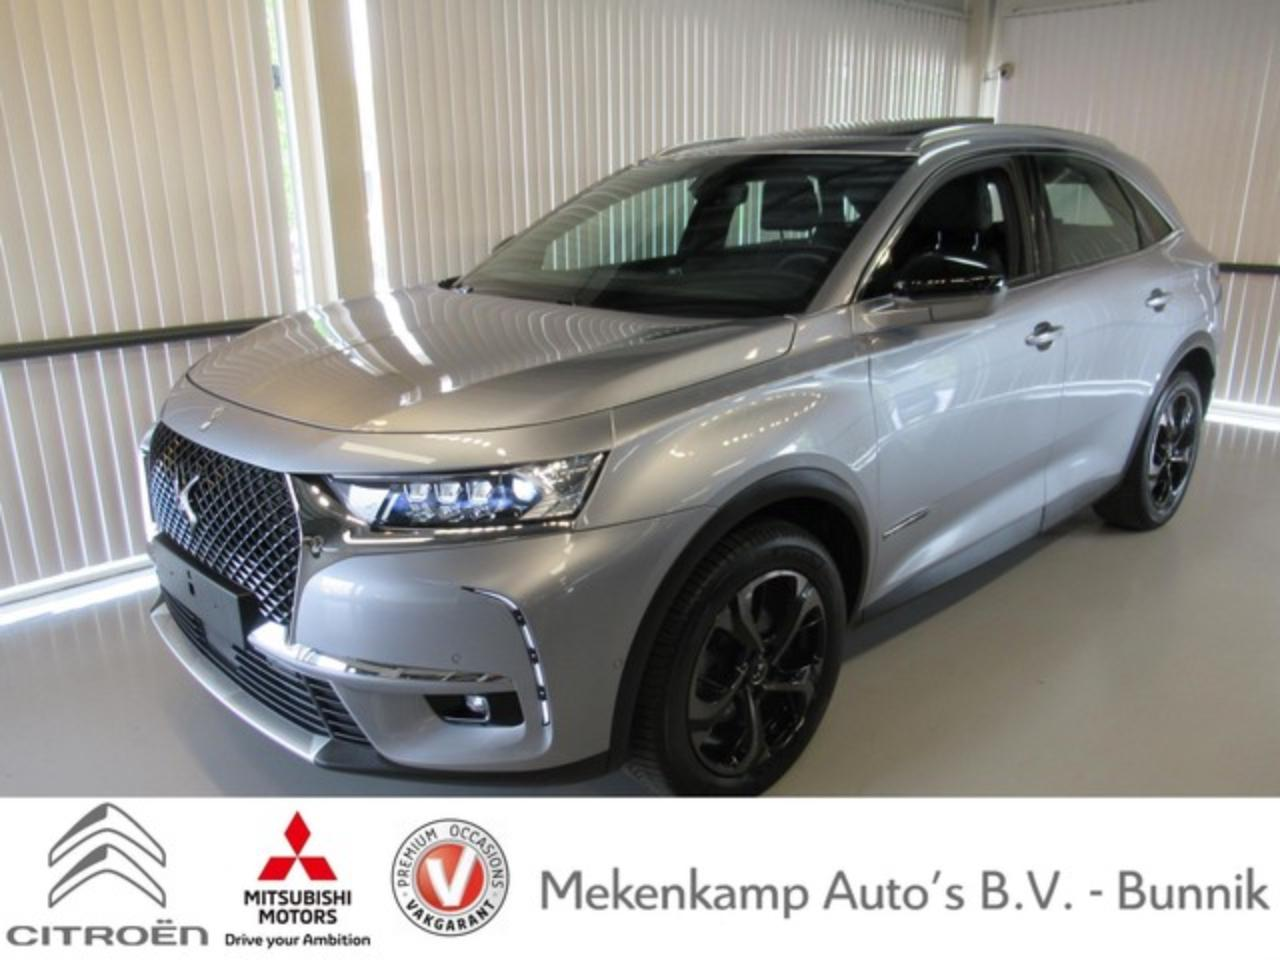 Ds DS 7 Crossback 1.6 PureTech So Chic RIVOLI line EAT8 225pk Panora